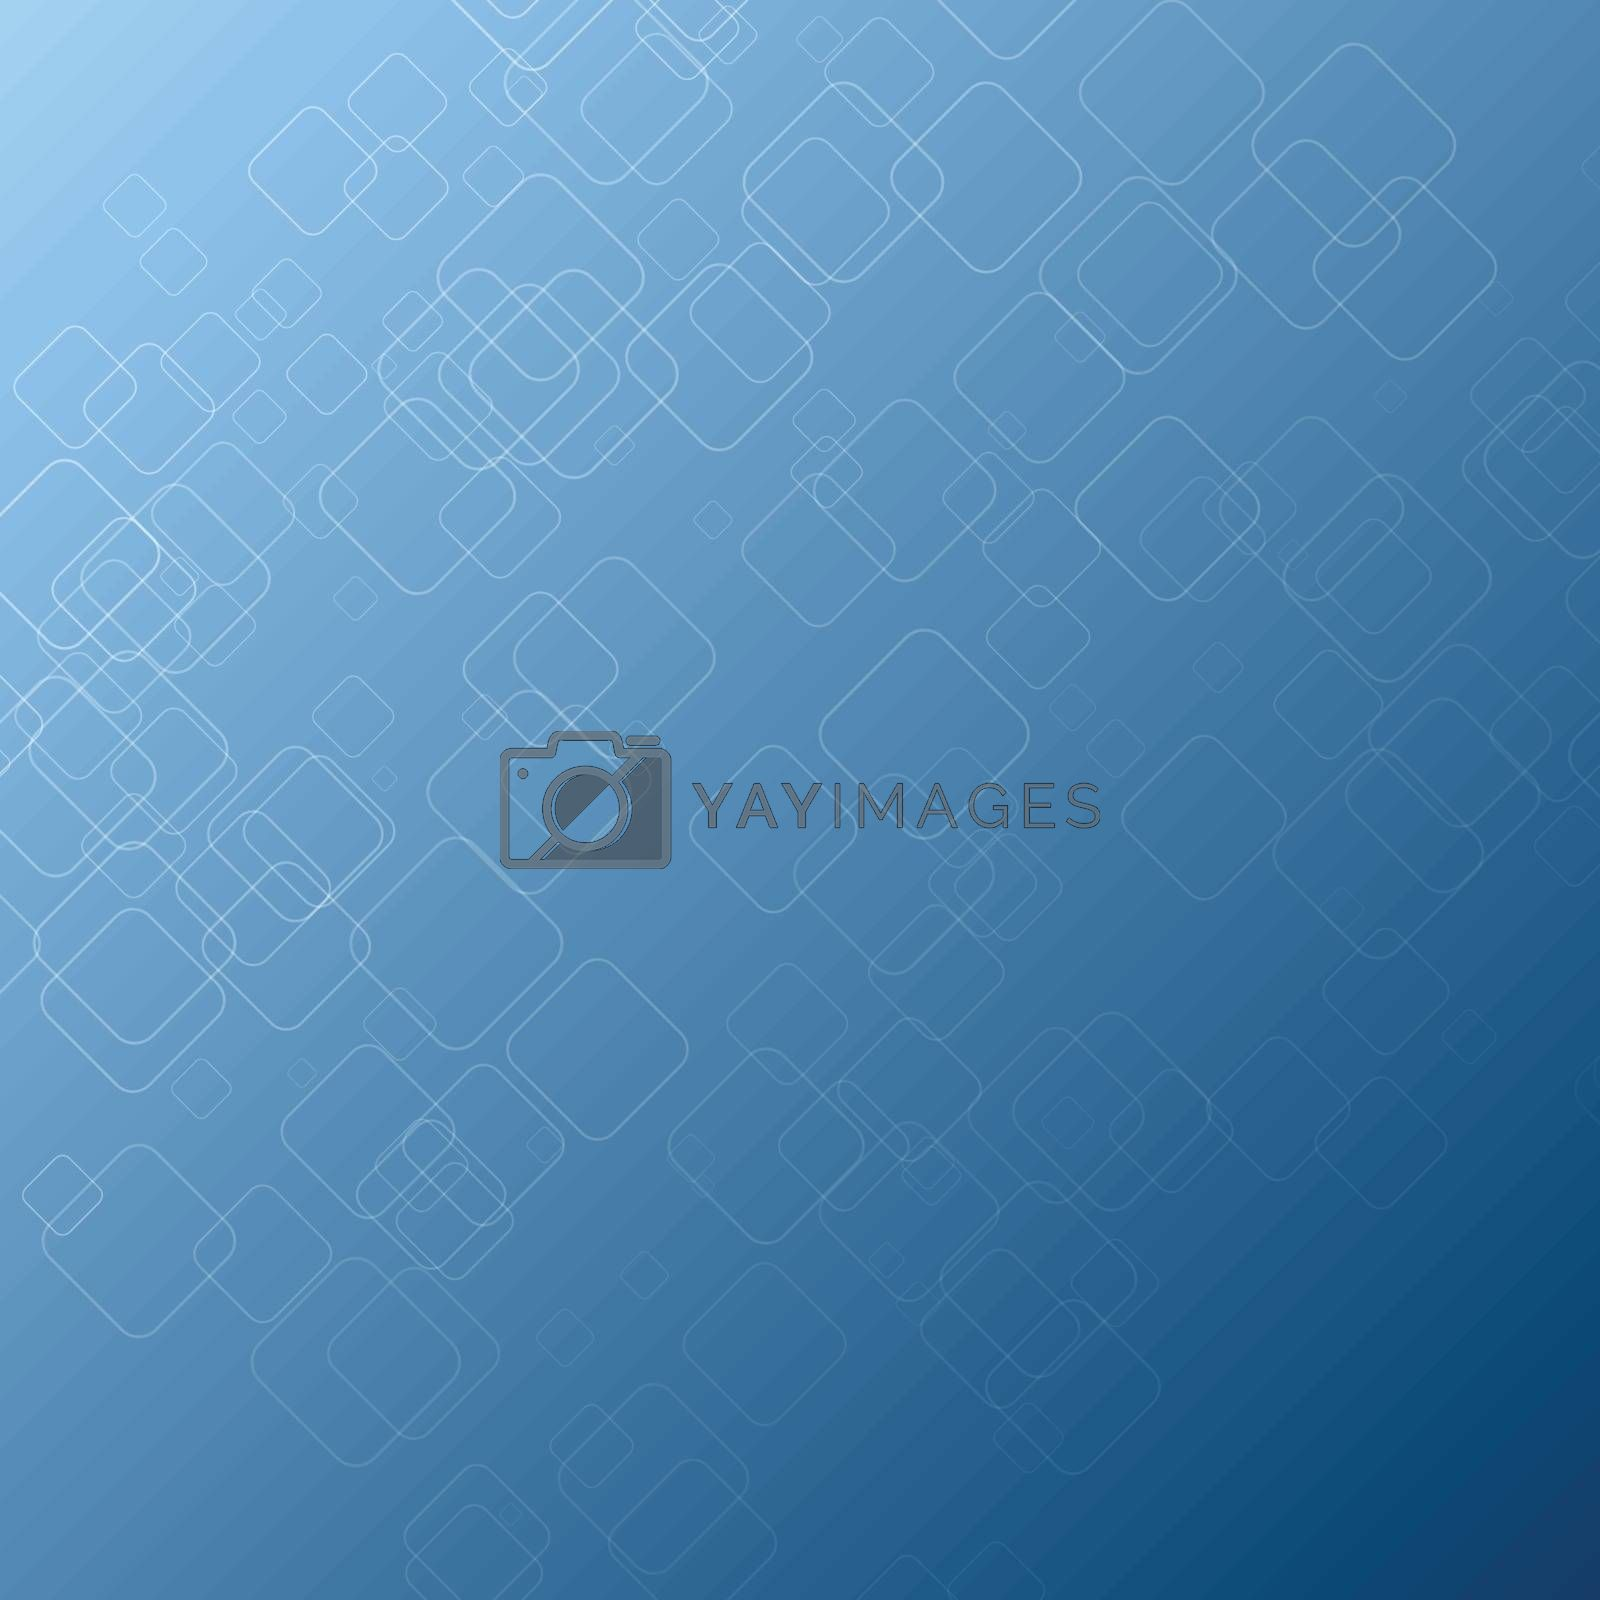 Abstract square  shape on blue background, stock vector